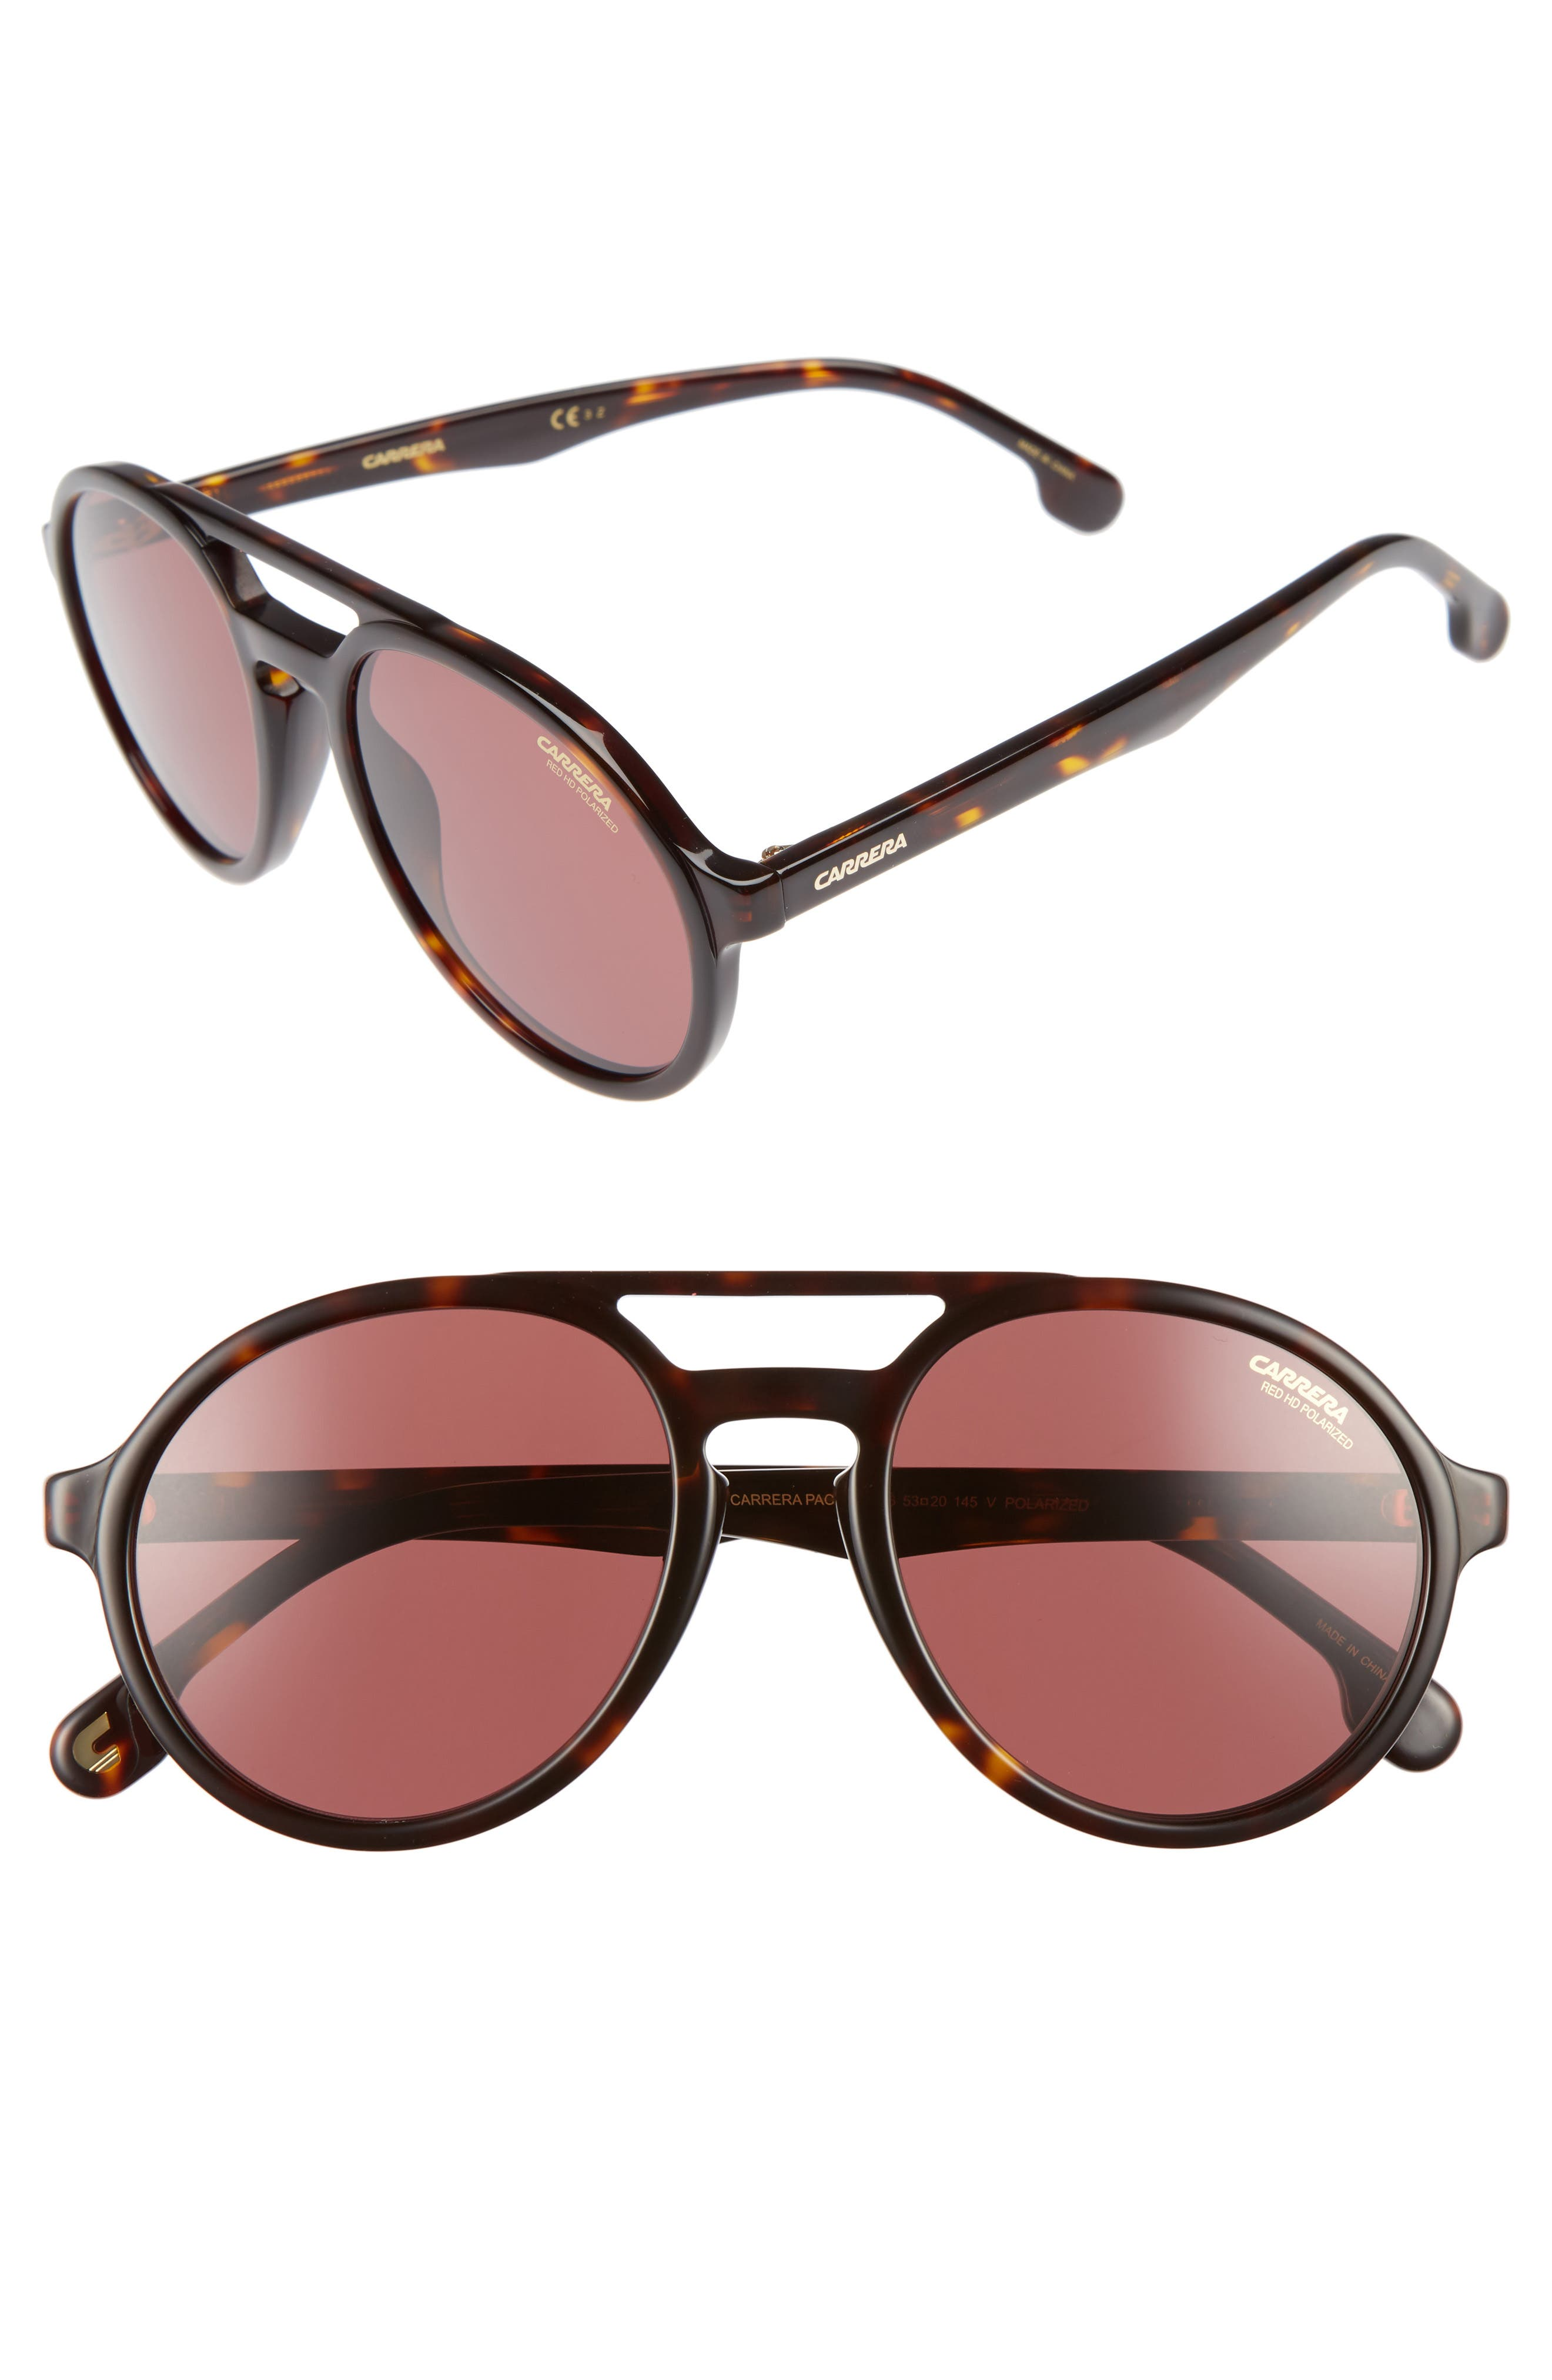 Main Image - Carrera Pace 53mm Polarized Pilot Sunglasses